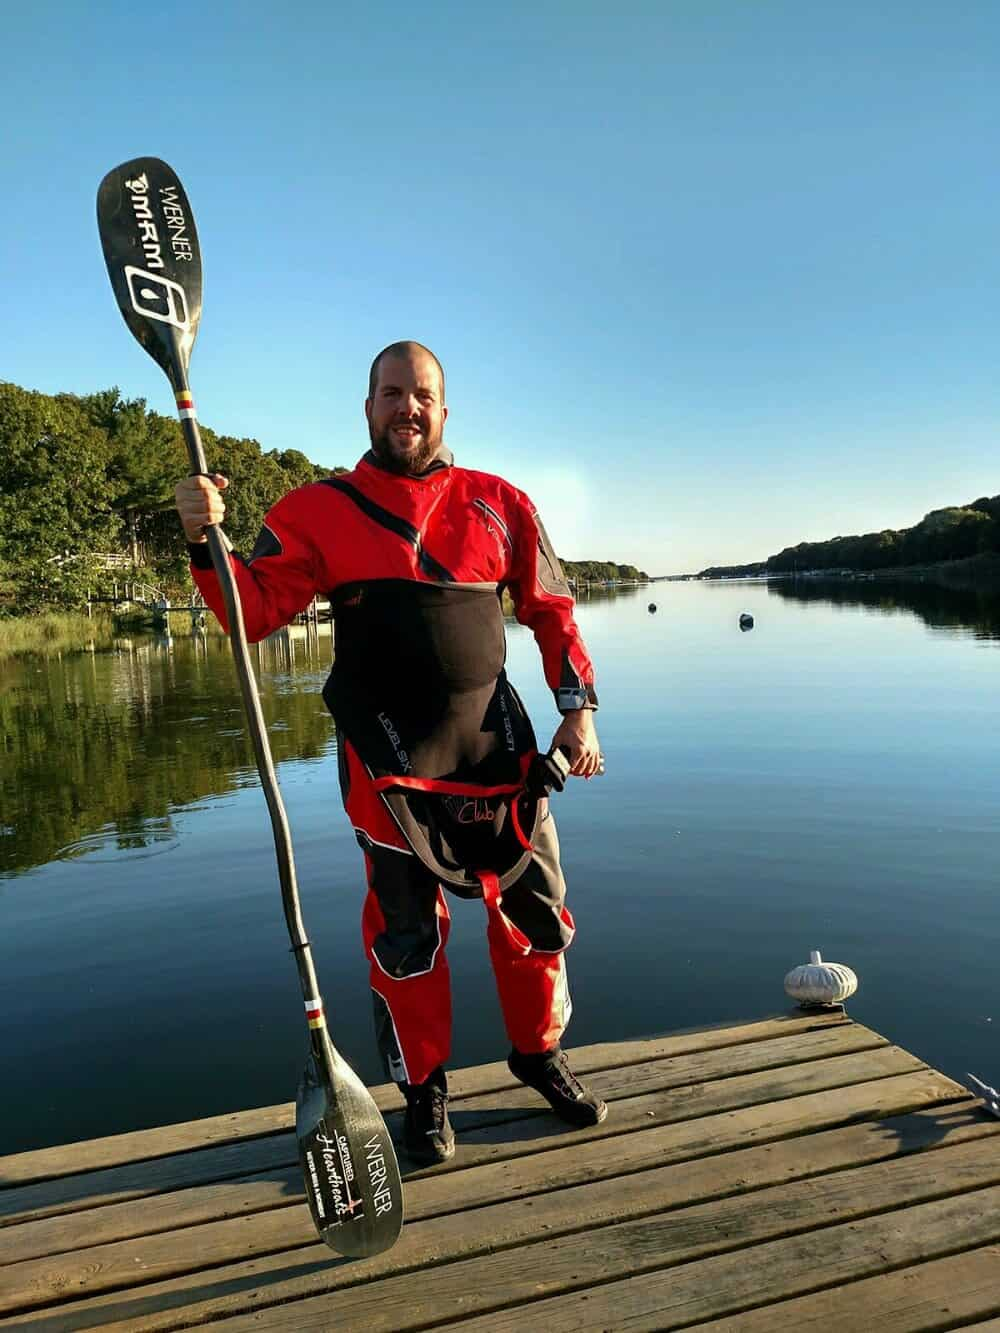 Kayaker Rich Brand poses with his kayak paddle